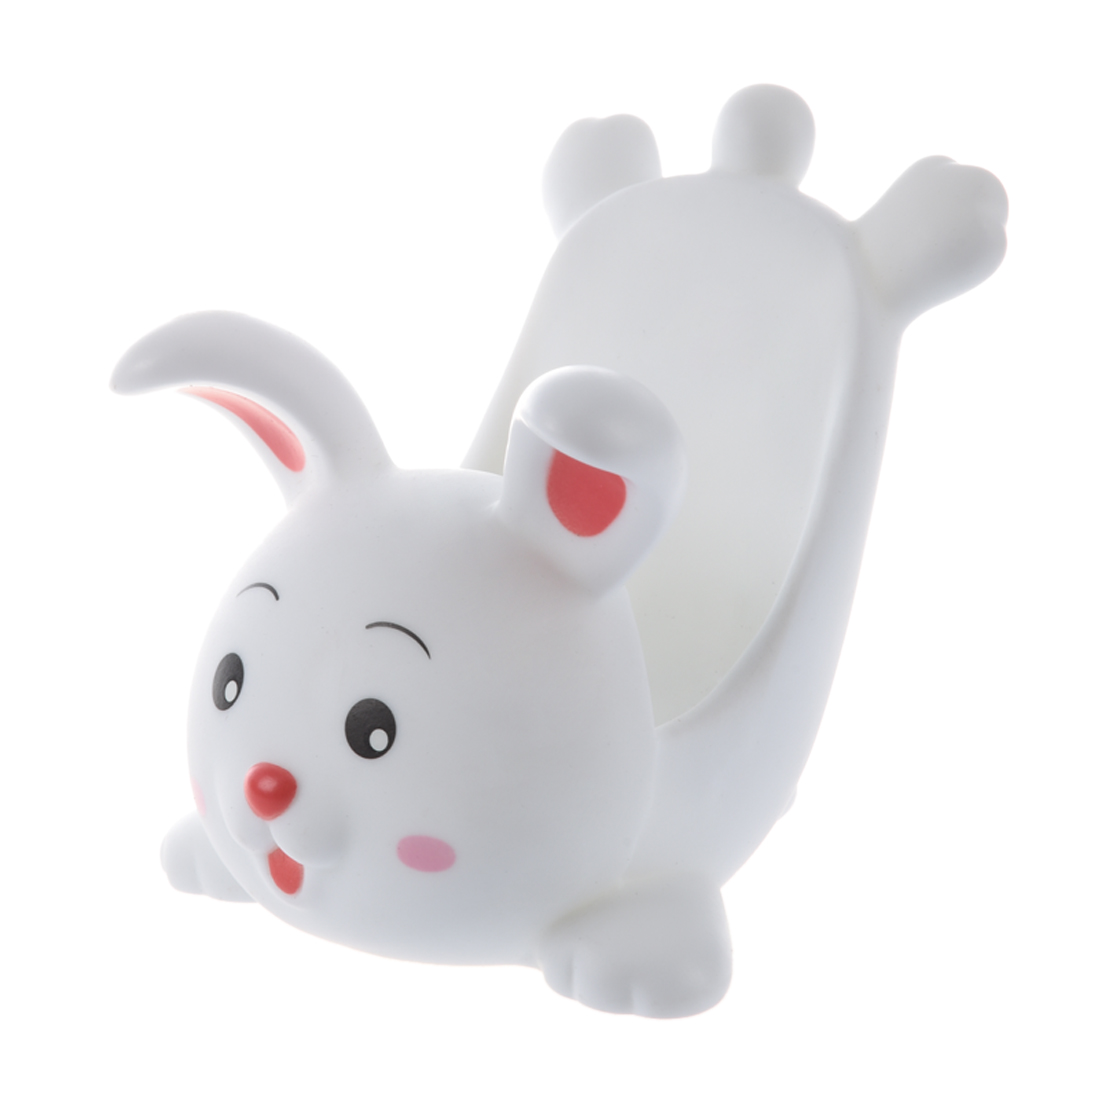 White Plastic Countertop Mobile Phone Rabbit Display Stand ...